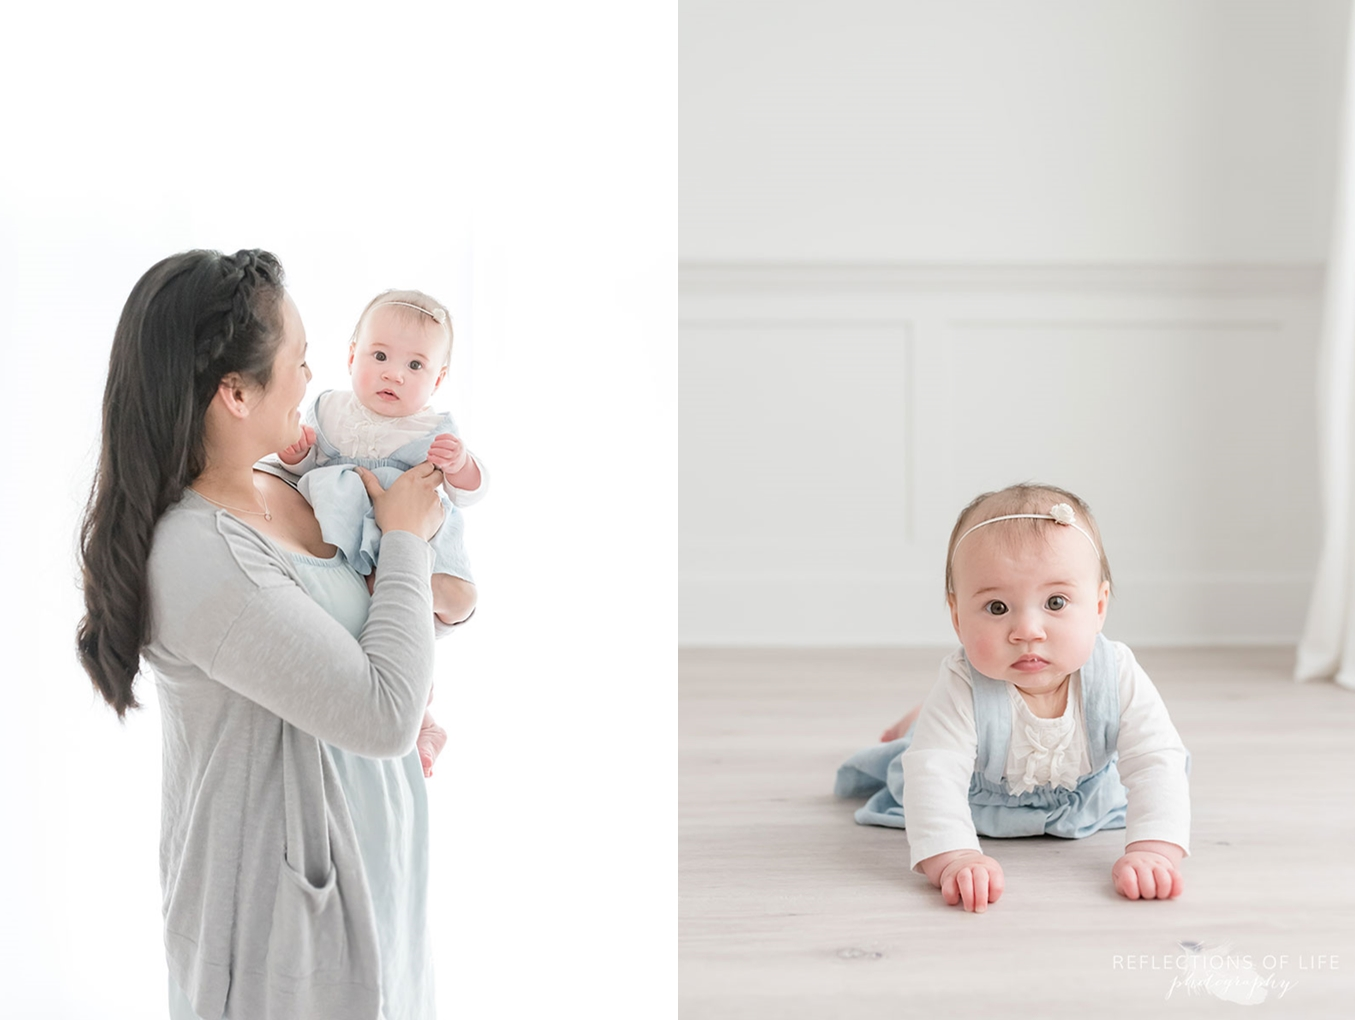 Mother and baby photoshoot in white studio